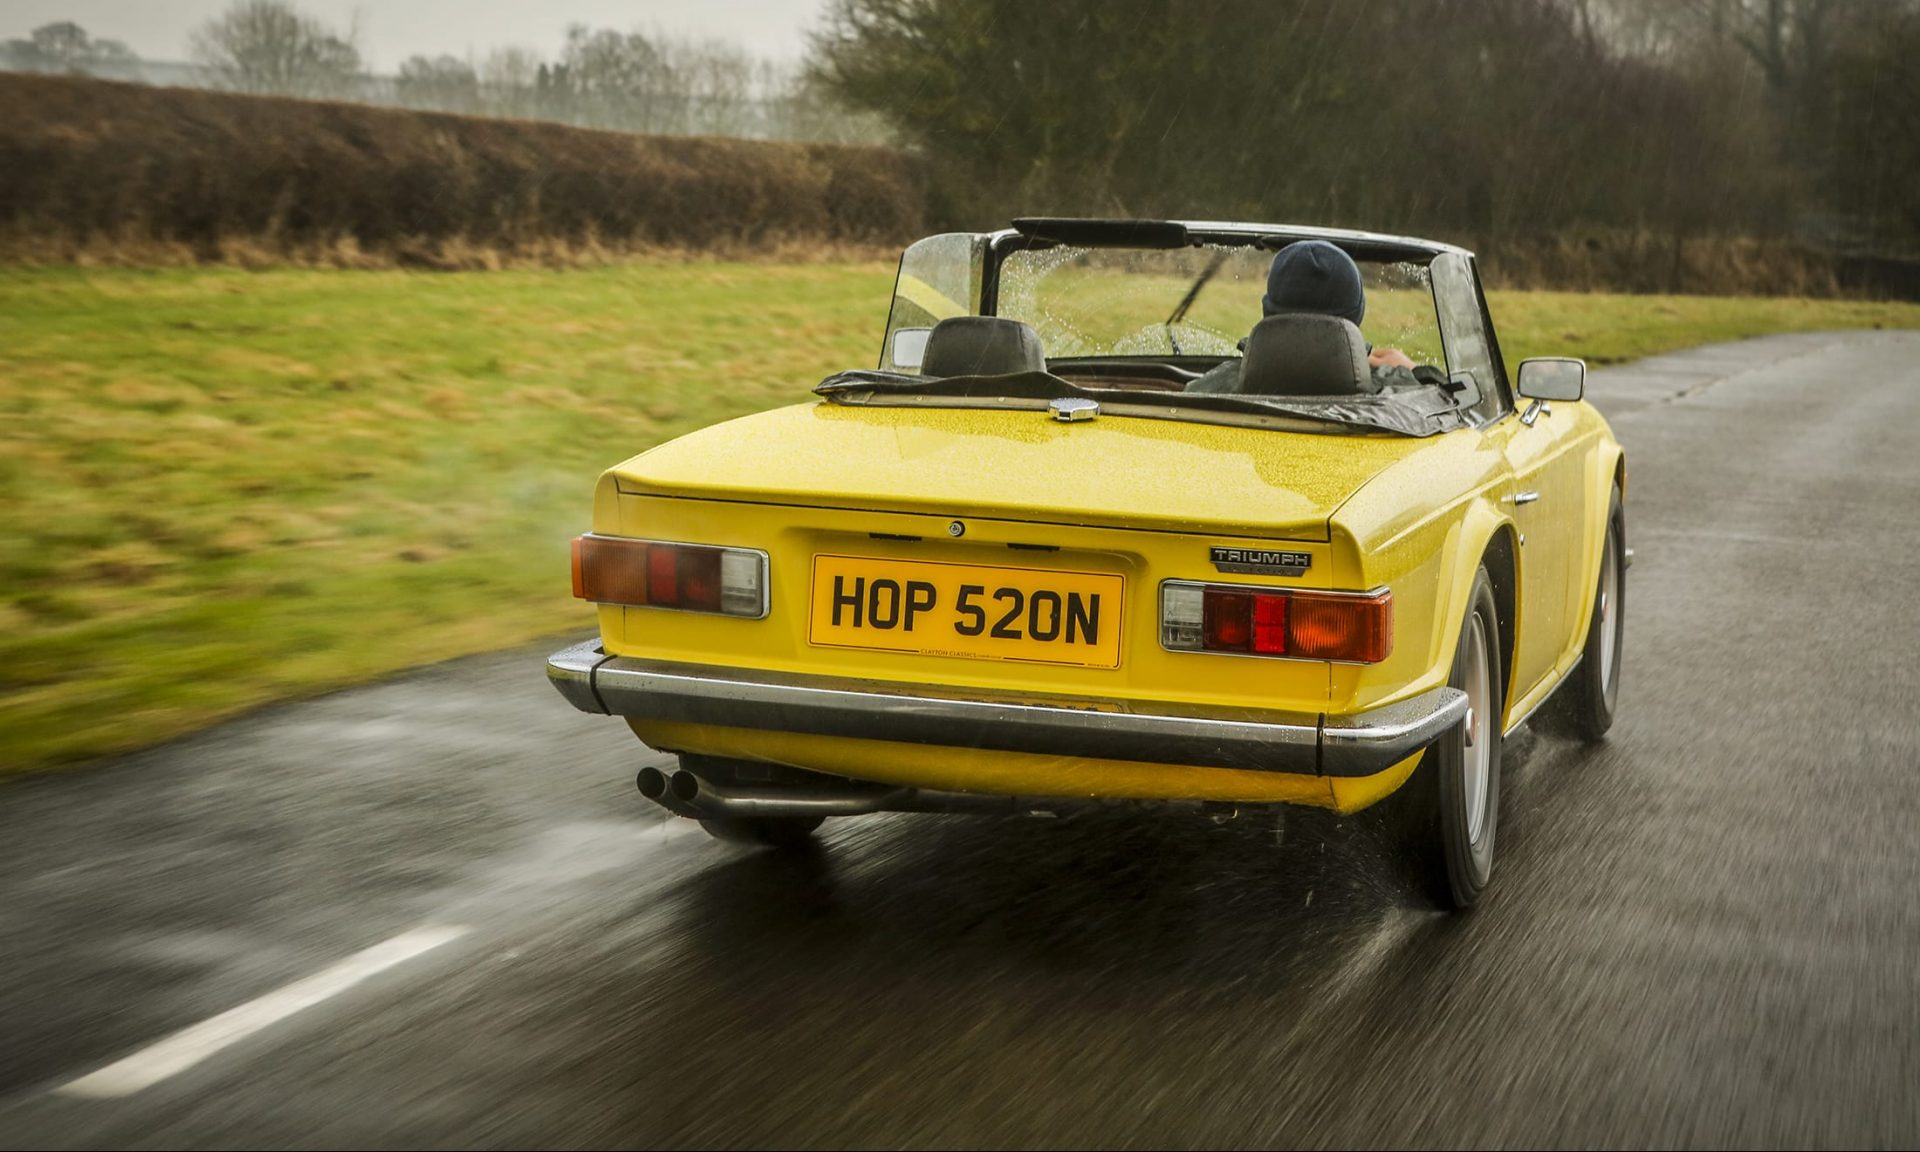 Rear view of yellow Triumph